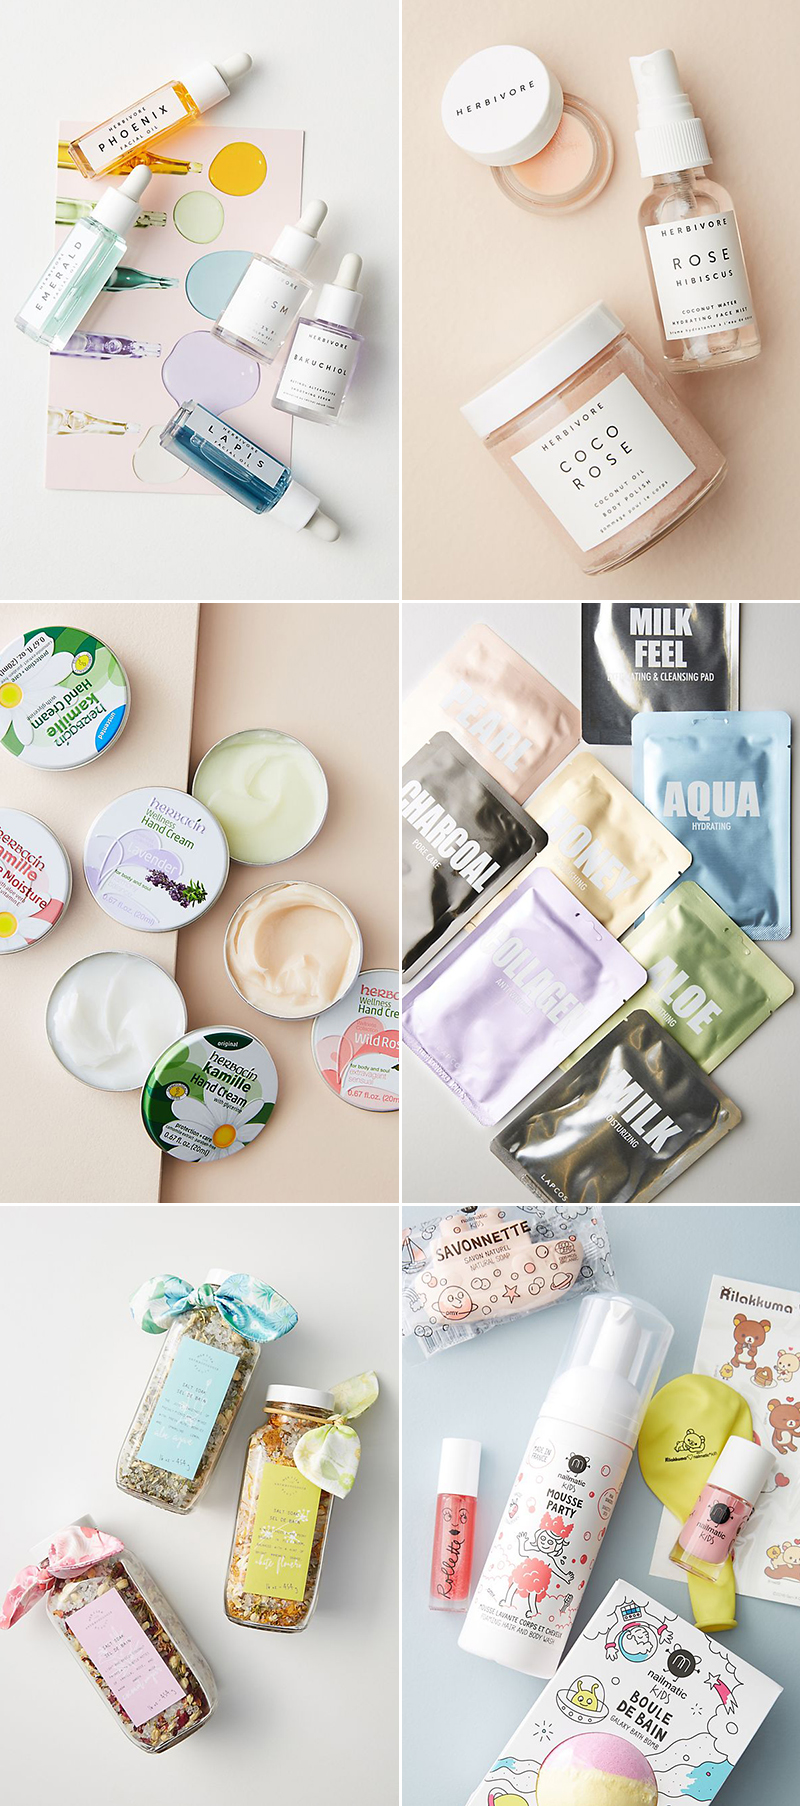 Beauty and wellness sets